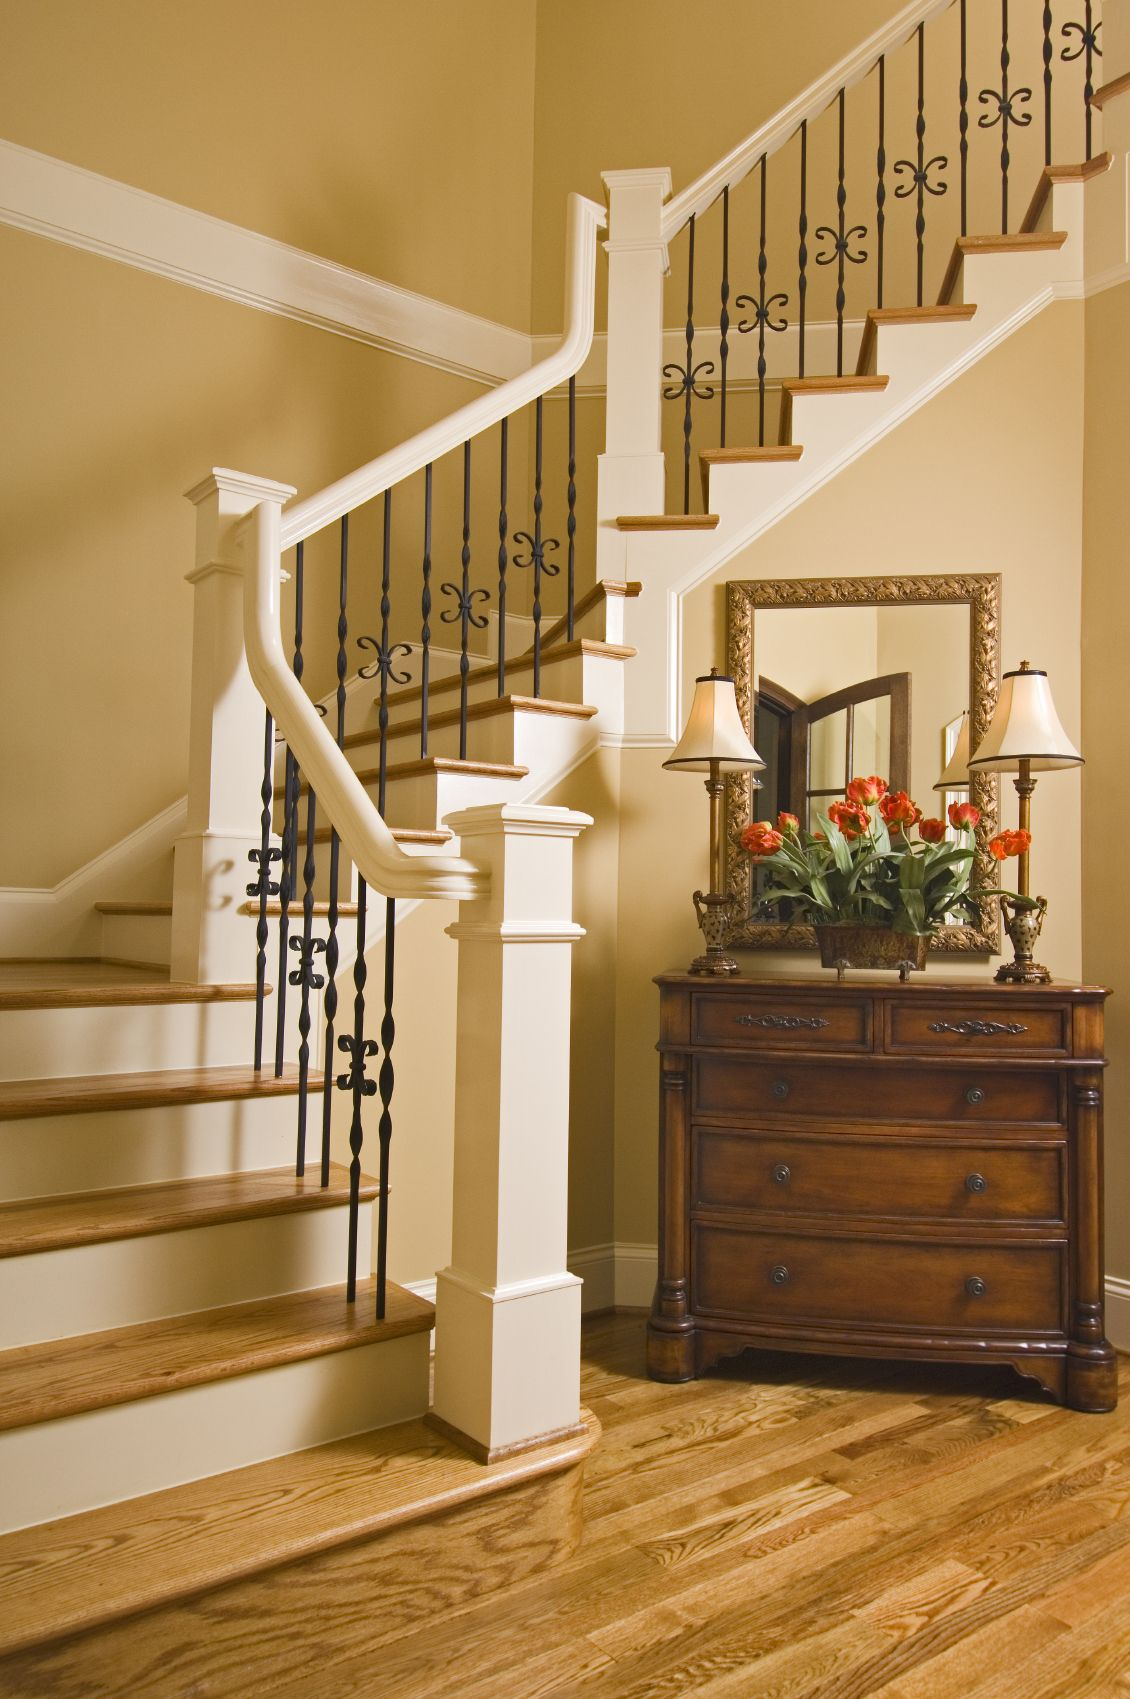 This Contemporary Staircase Has Light Oak Treads And White Railings With  Black Iron Spindles. An Antique Low Dresser Acts As Storage In The Place Of  A ...